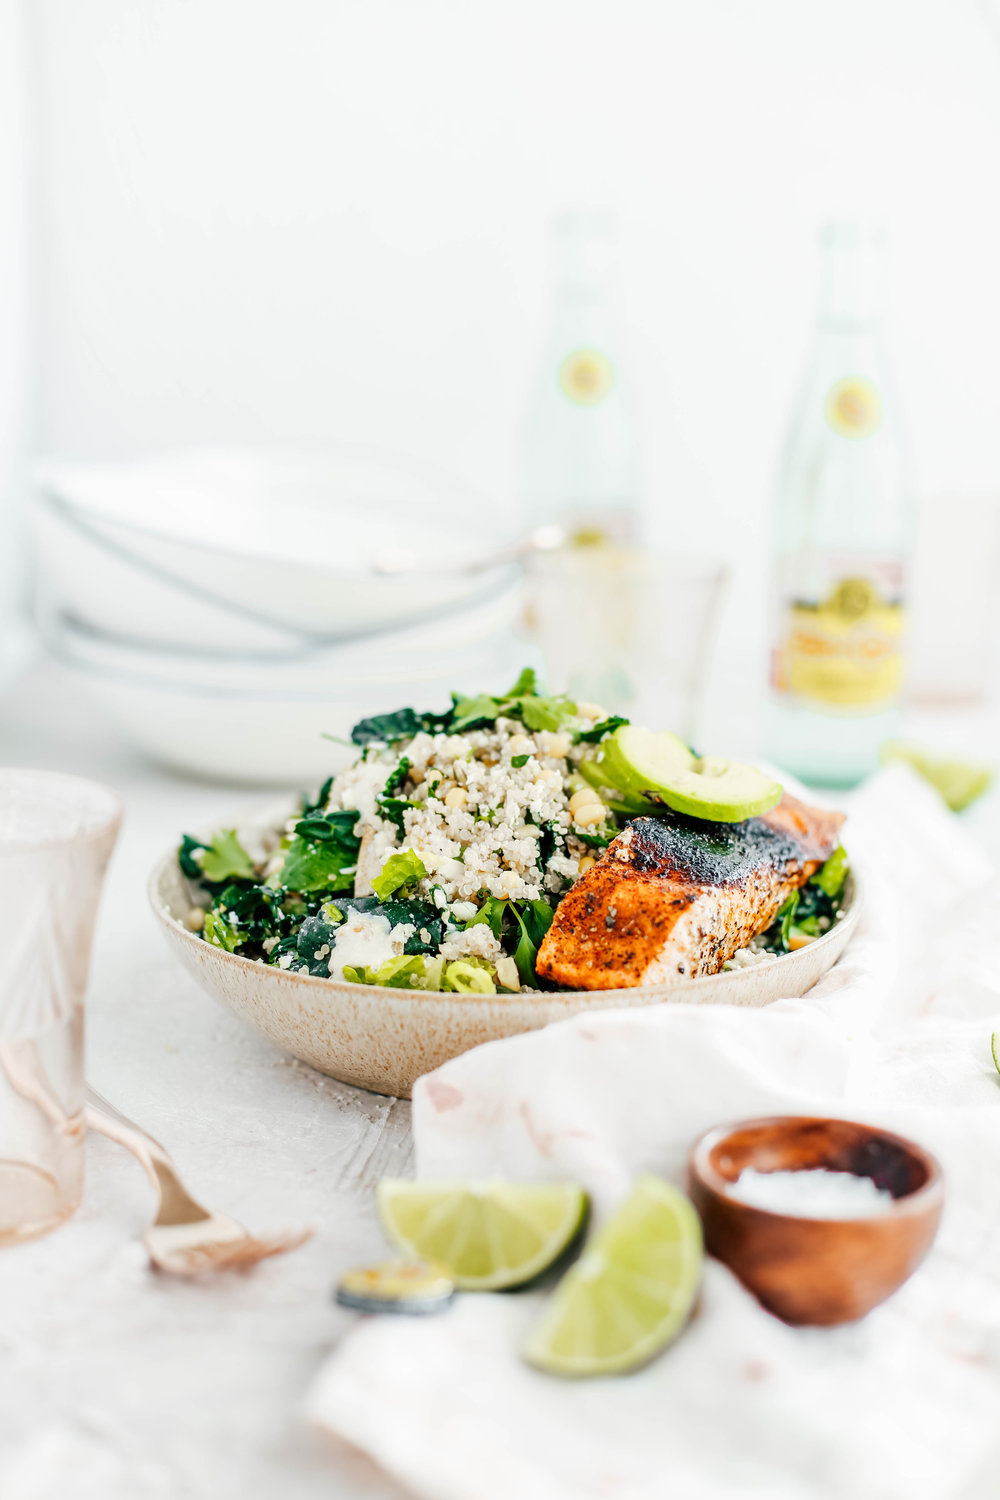 Golden Corn & Quinoa Mexican Caesar Salad with Blackened Salmon-9.jpg